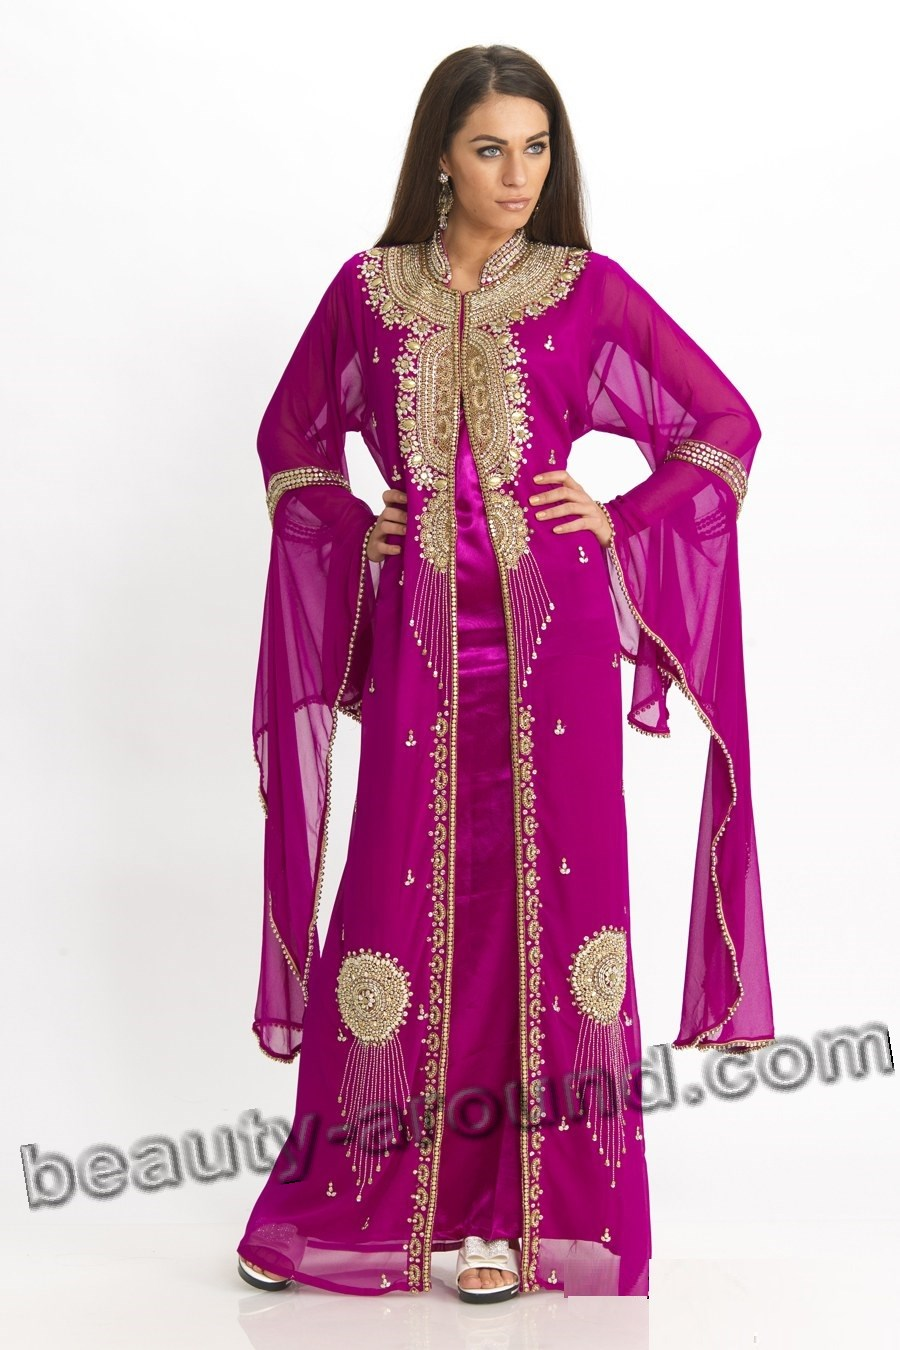 Beautiful Muslim kaftan picture